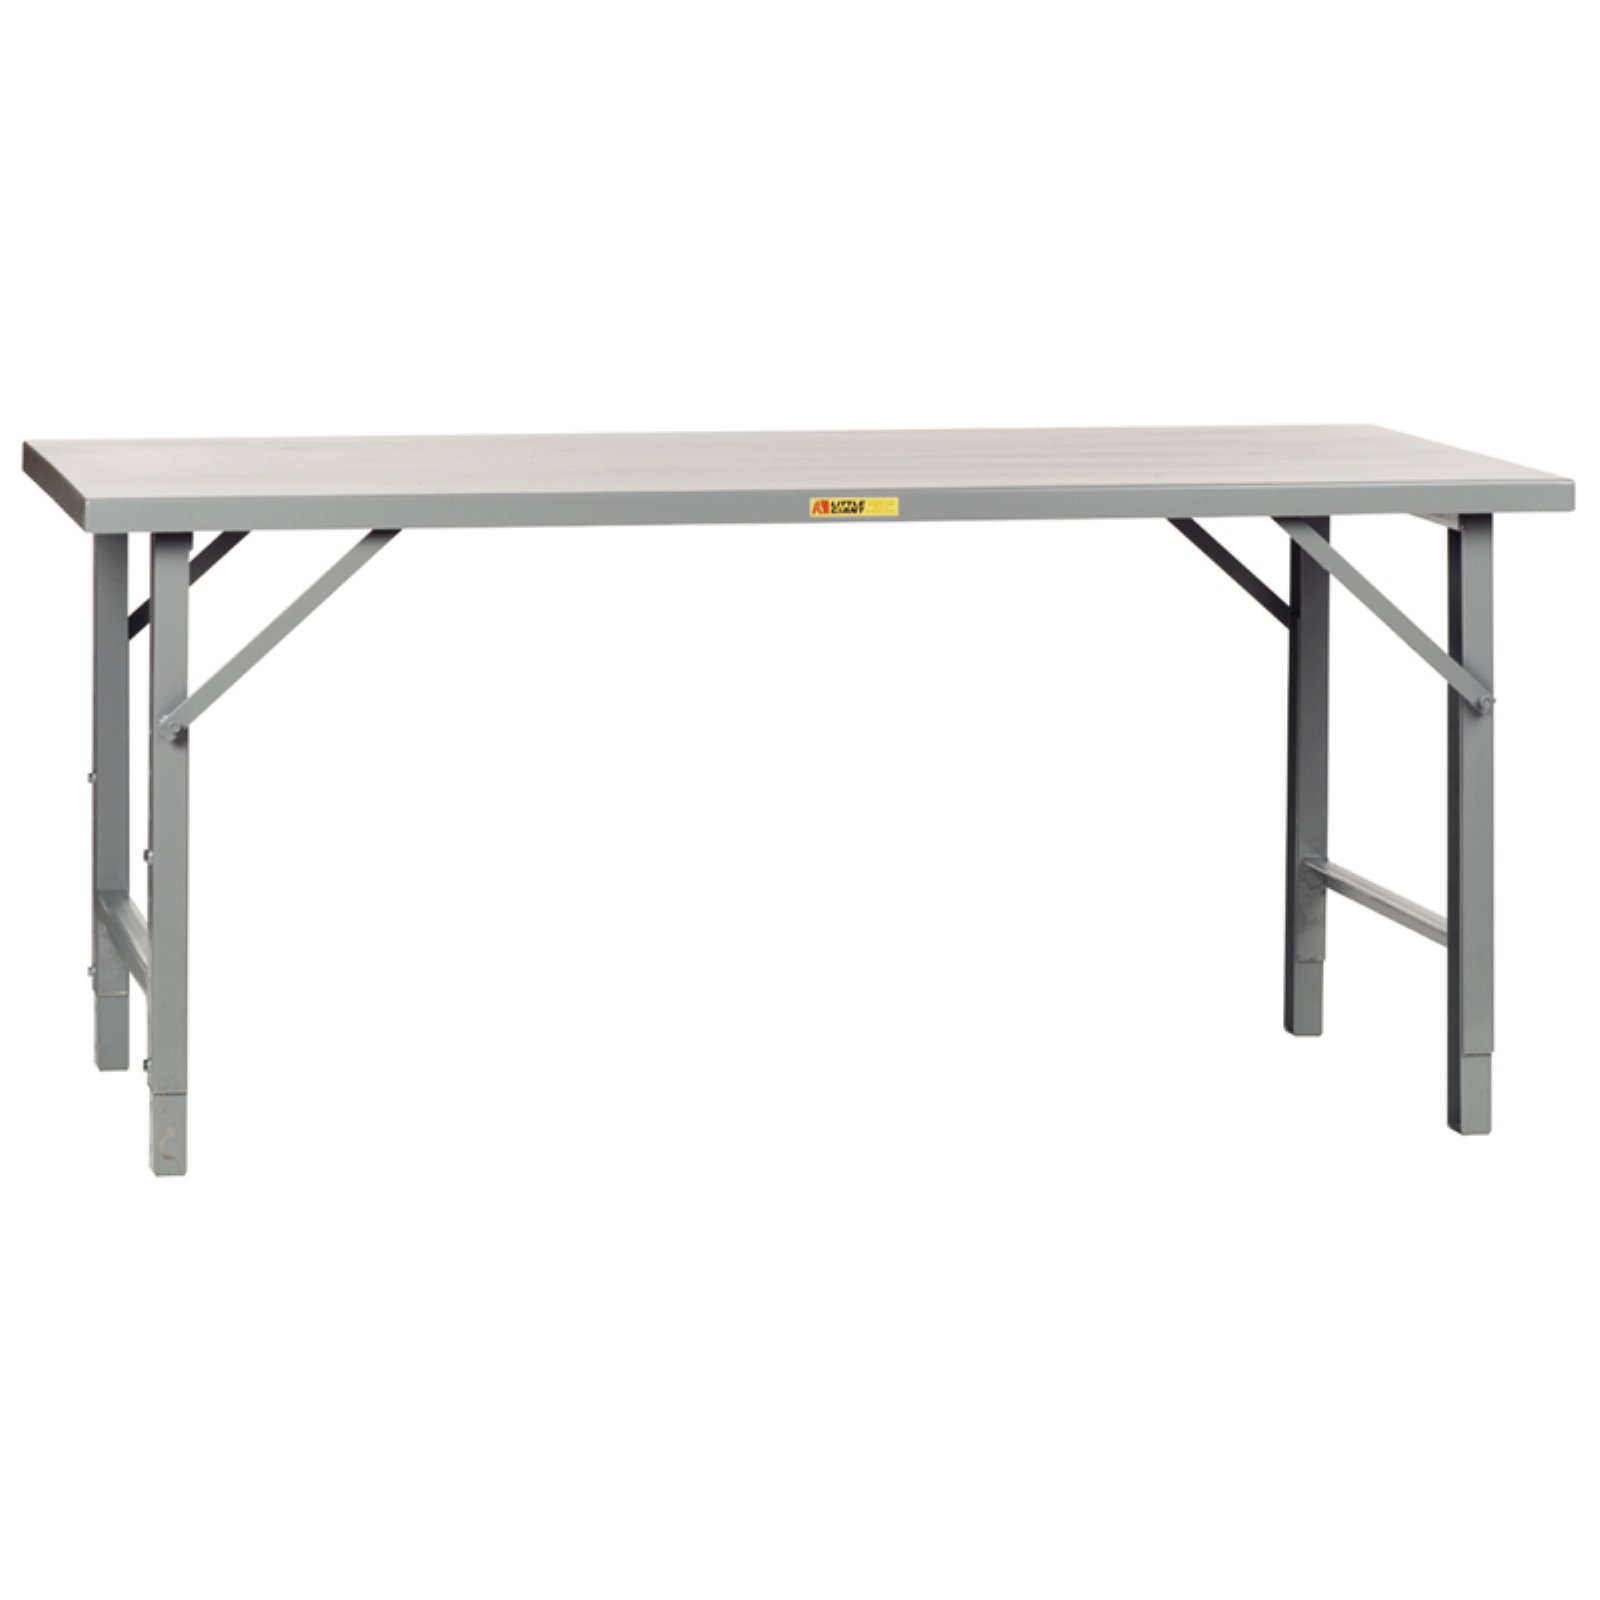 Little Giant Folding Leg Welded Workbench by Brennan Equipment and Manufacturing Inc